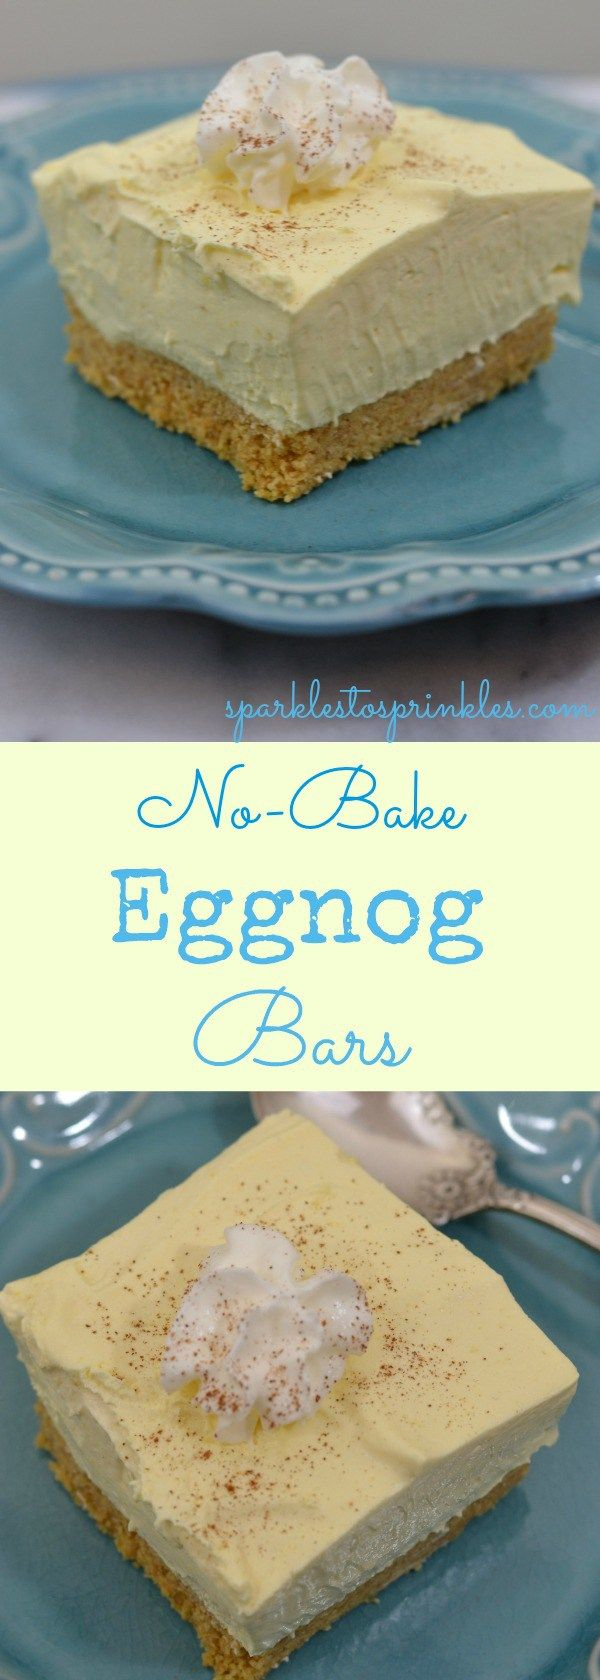 If you love eggnog than you are going to LOVE these No-Bake Eggnog Bars.  The flavor combination of graham cracker crust and a creamy sweet delicious eggnog filling is to die for! Pin for Later!